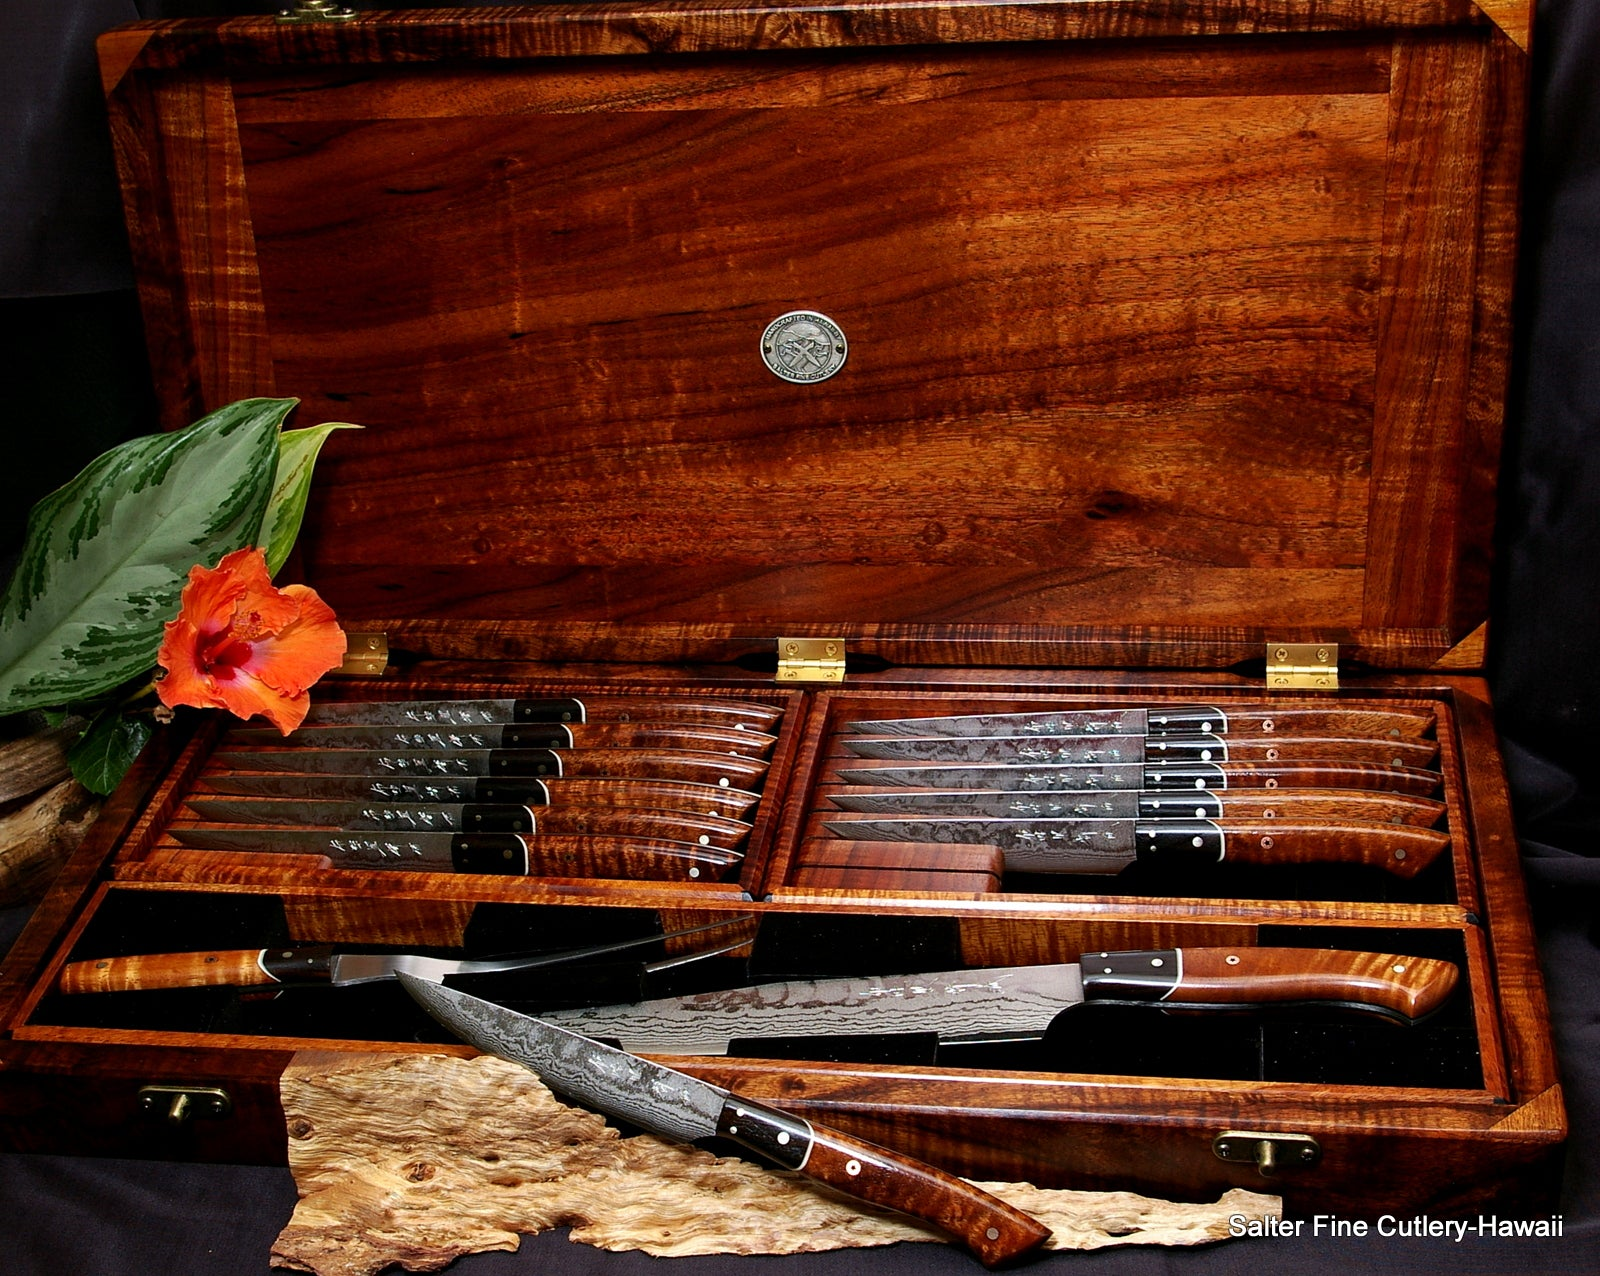 14-pc individually handcrafted steak knife set by Salter Fine Cutlery of Hawaii